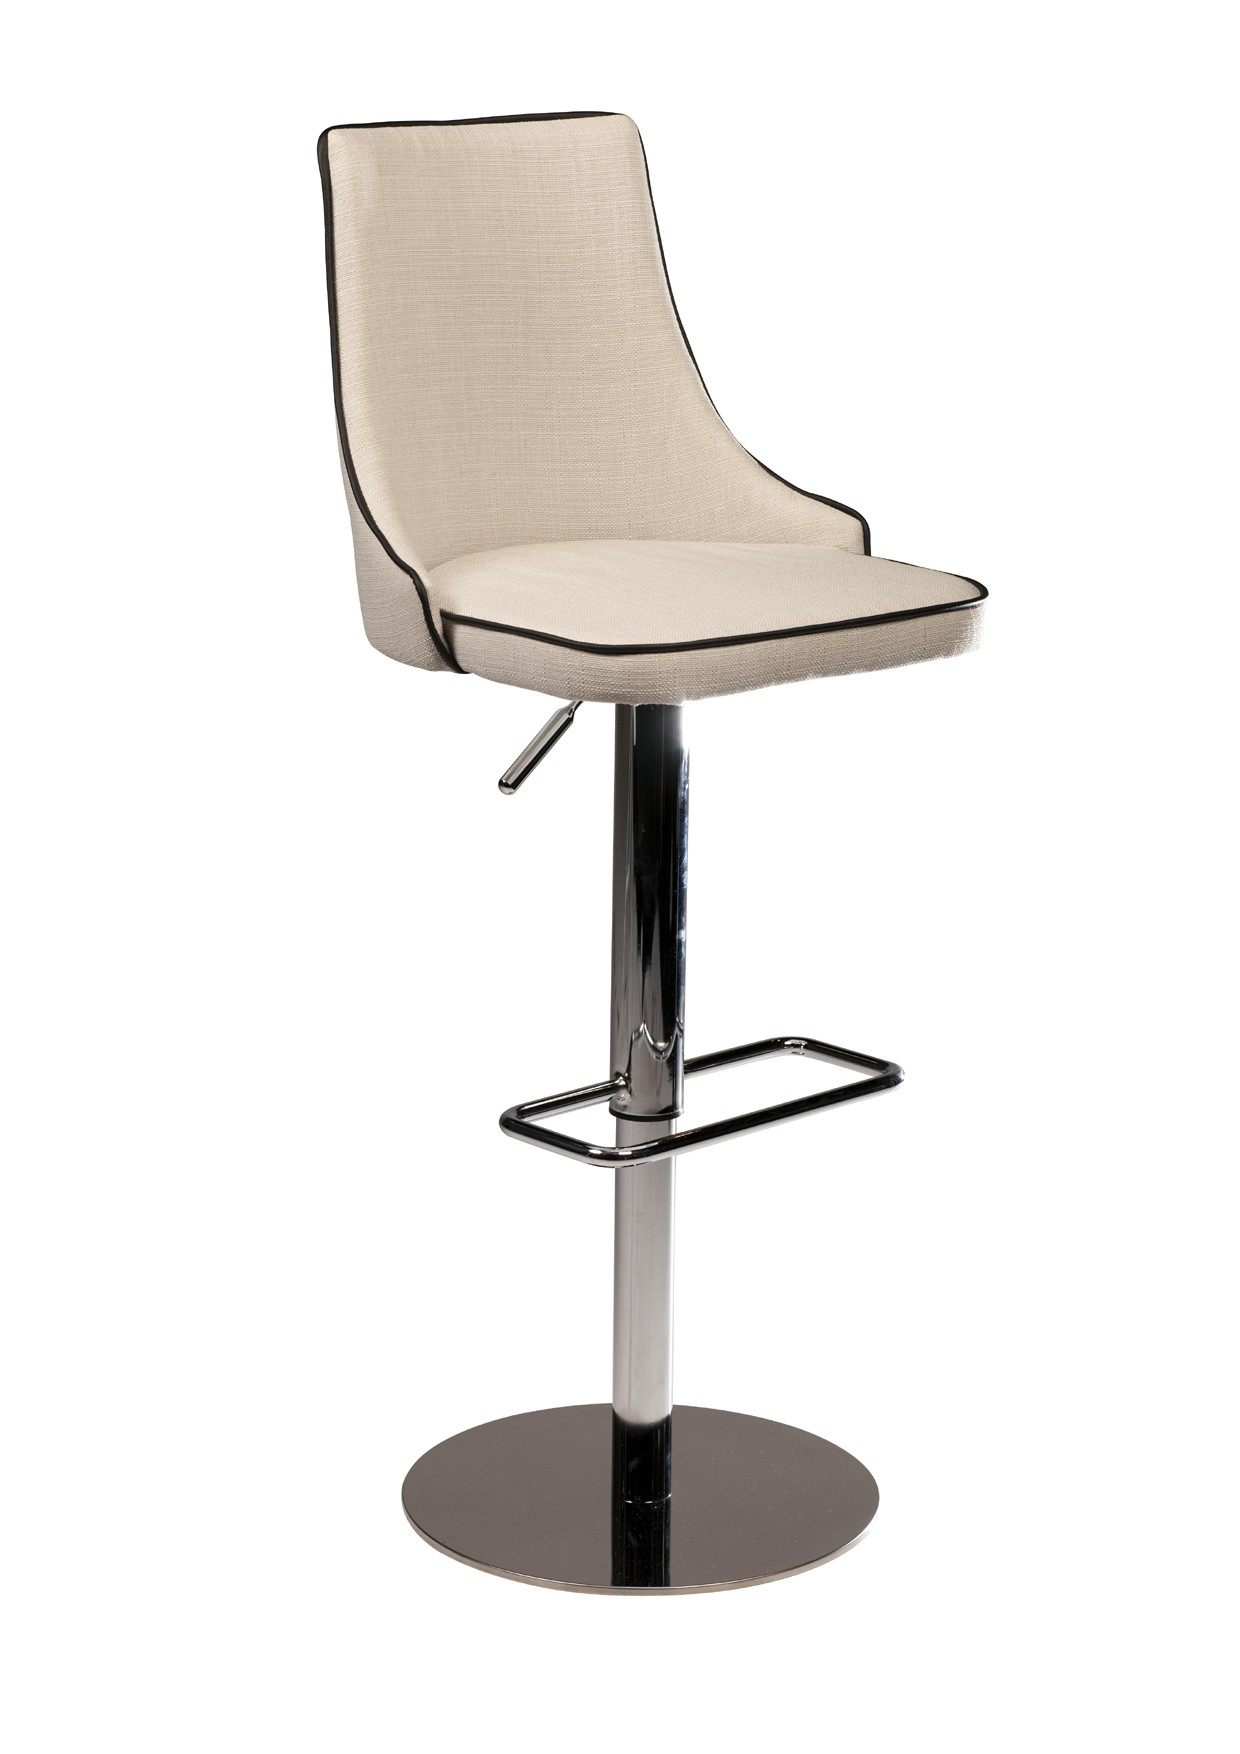 Barhocker Design Barhocker Retro Design Danform Jenverso De